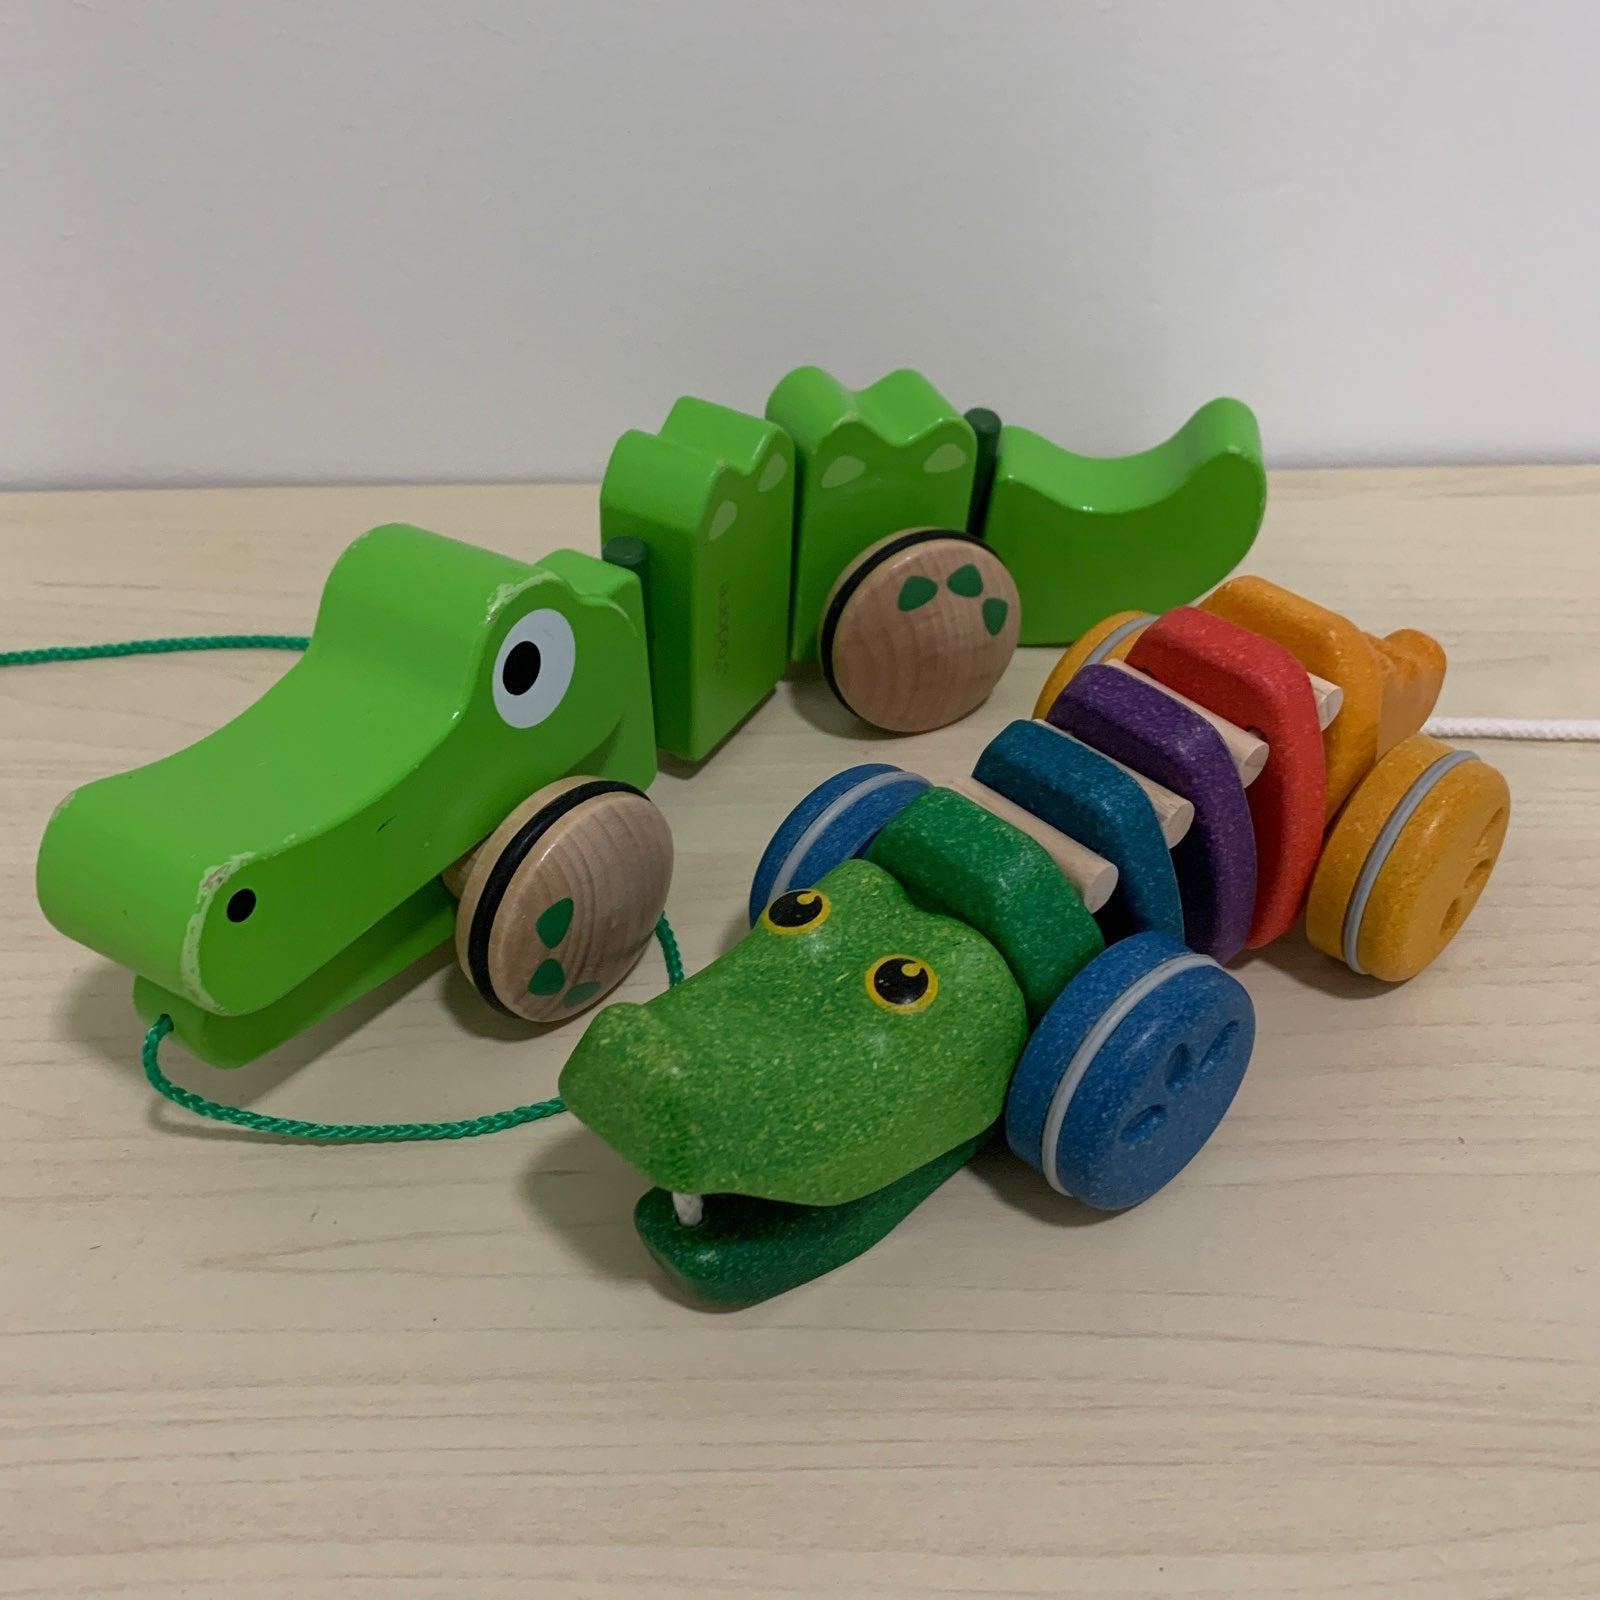 Two alligator pull toys